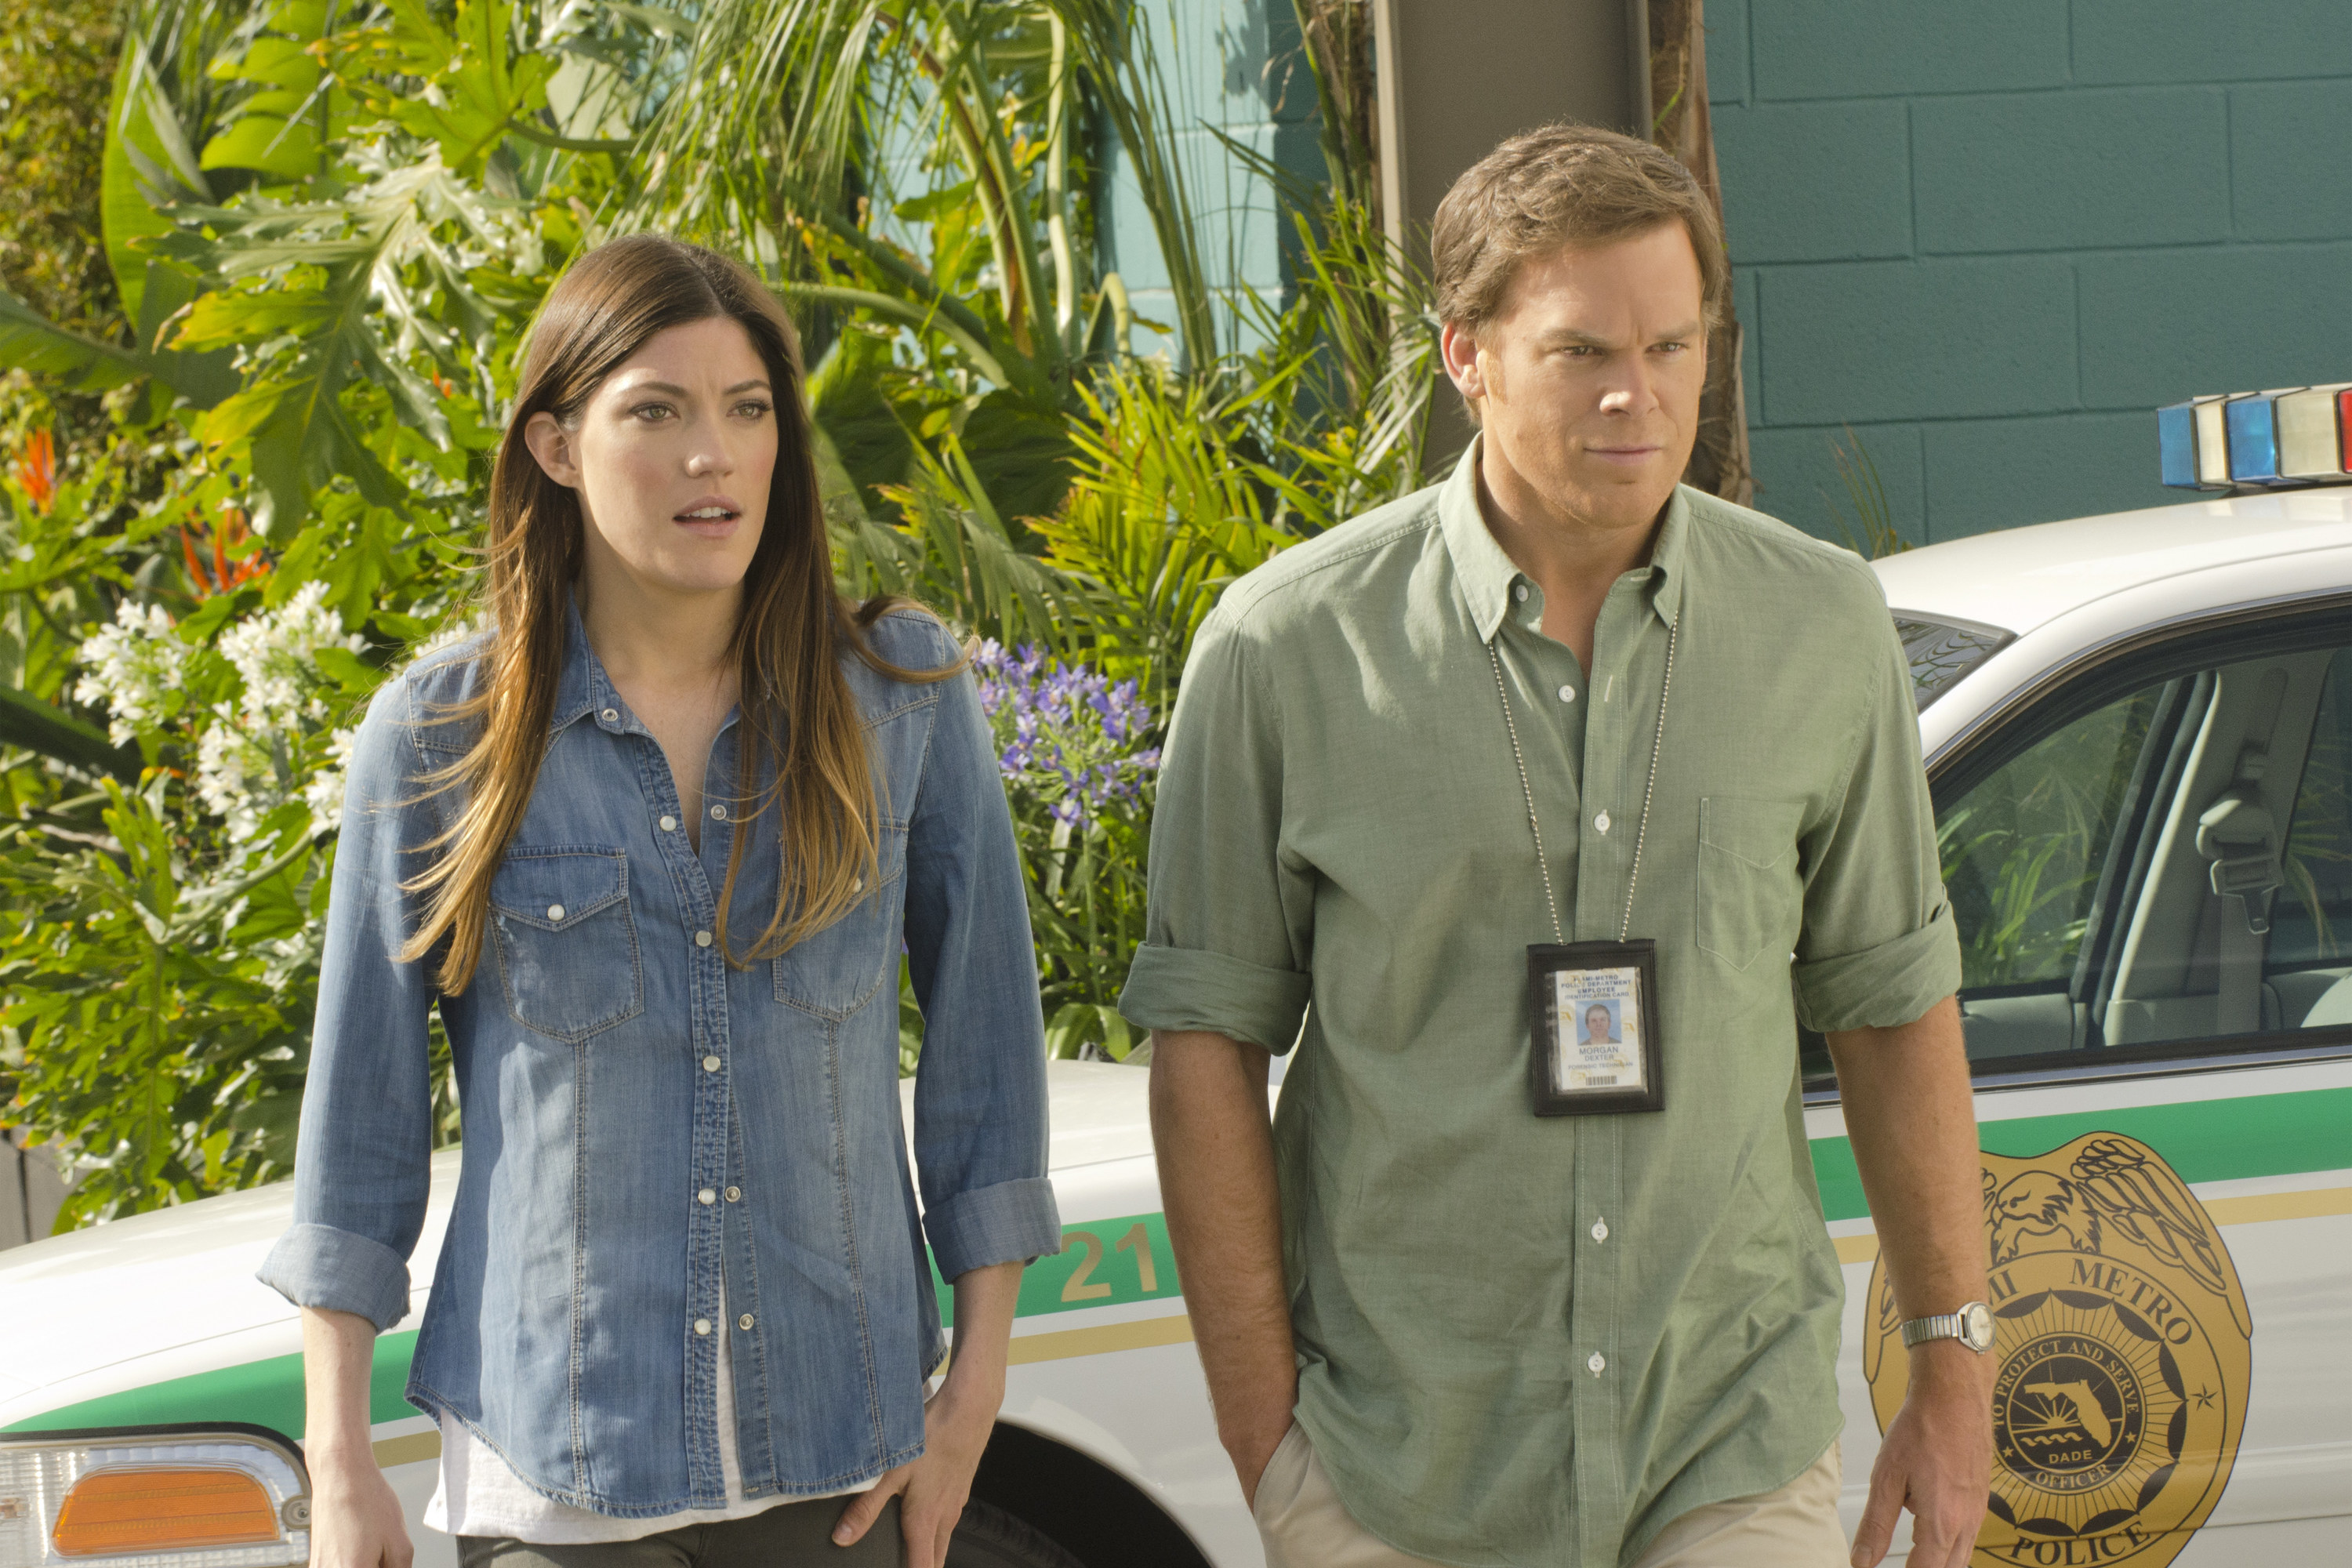 Dexter and Debra arriving at the crime scene